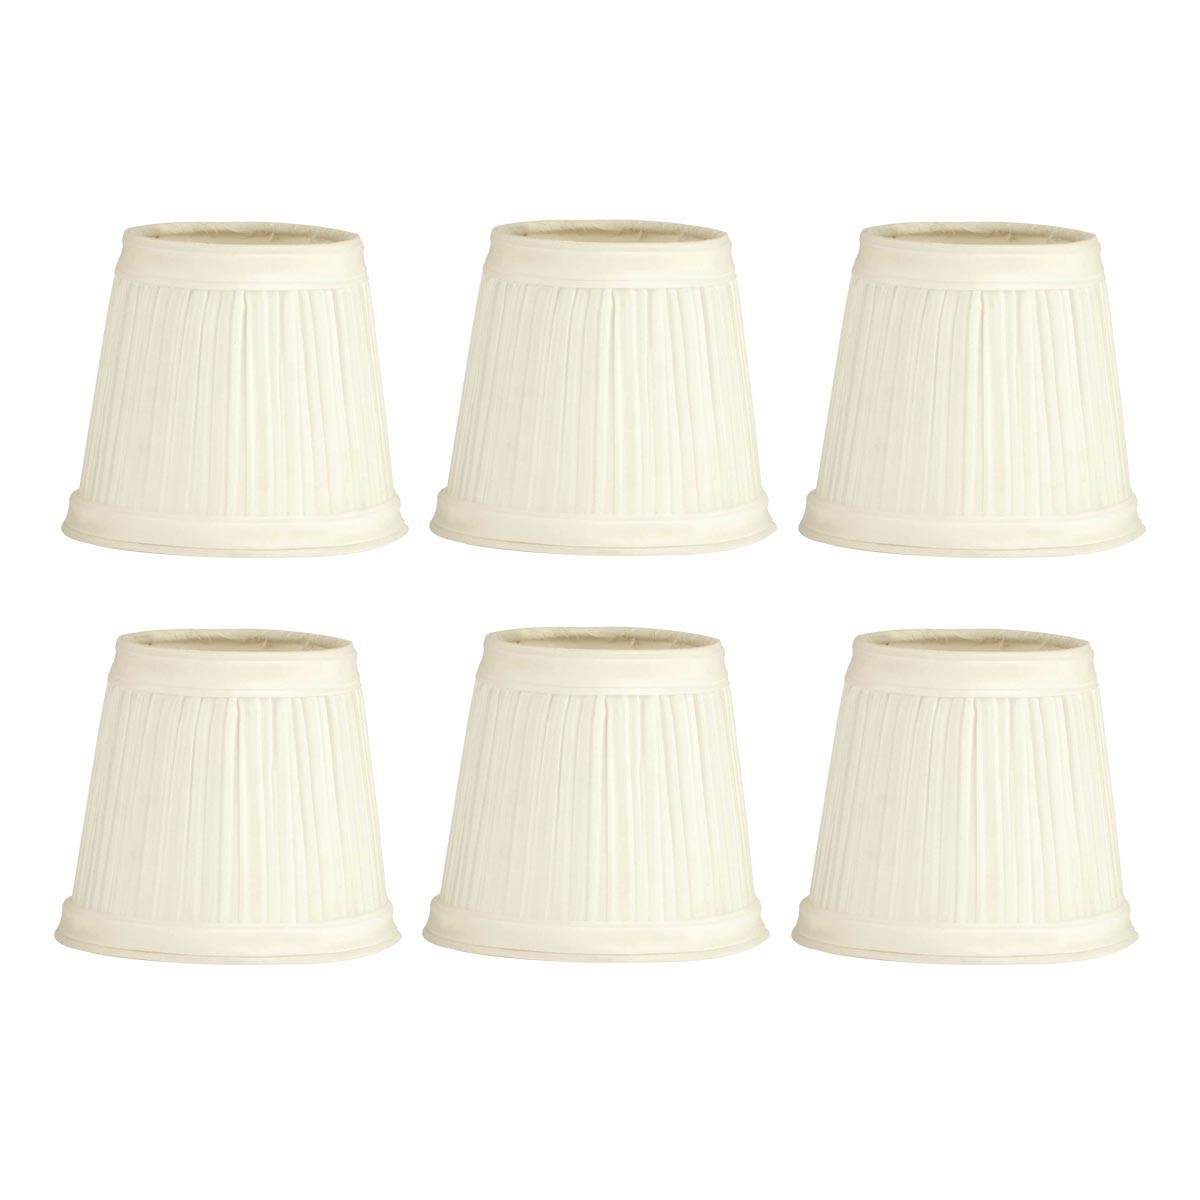 "6 Fabric Lampshade Eggshell 4 1 2"" Mini Drum Clip On 6 Pcs 